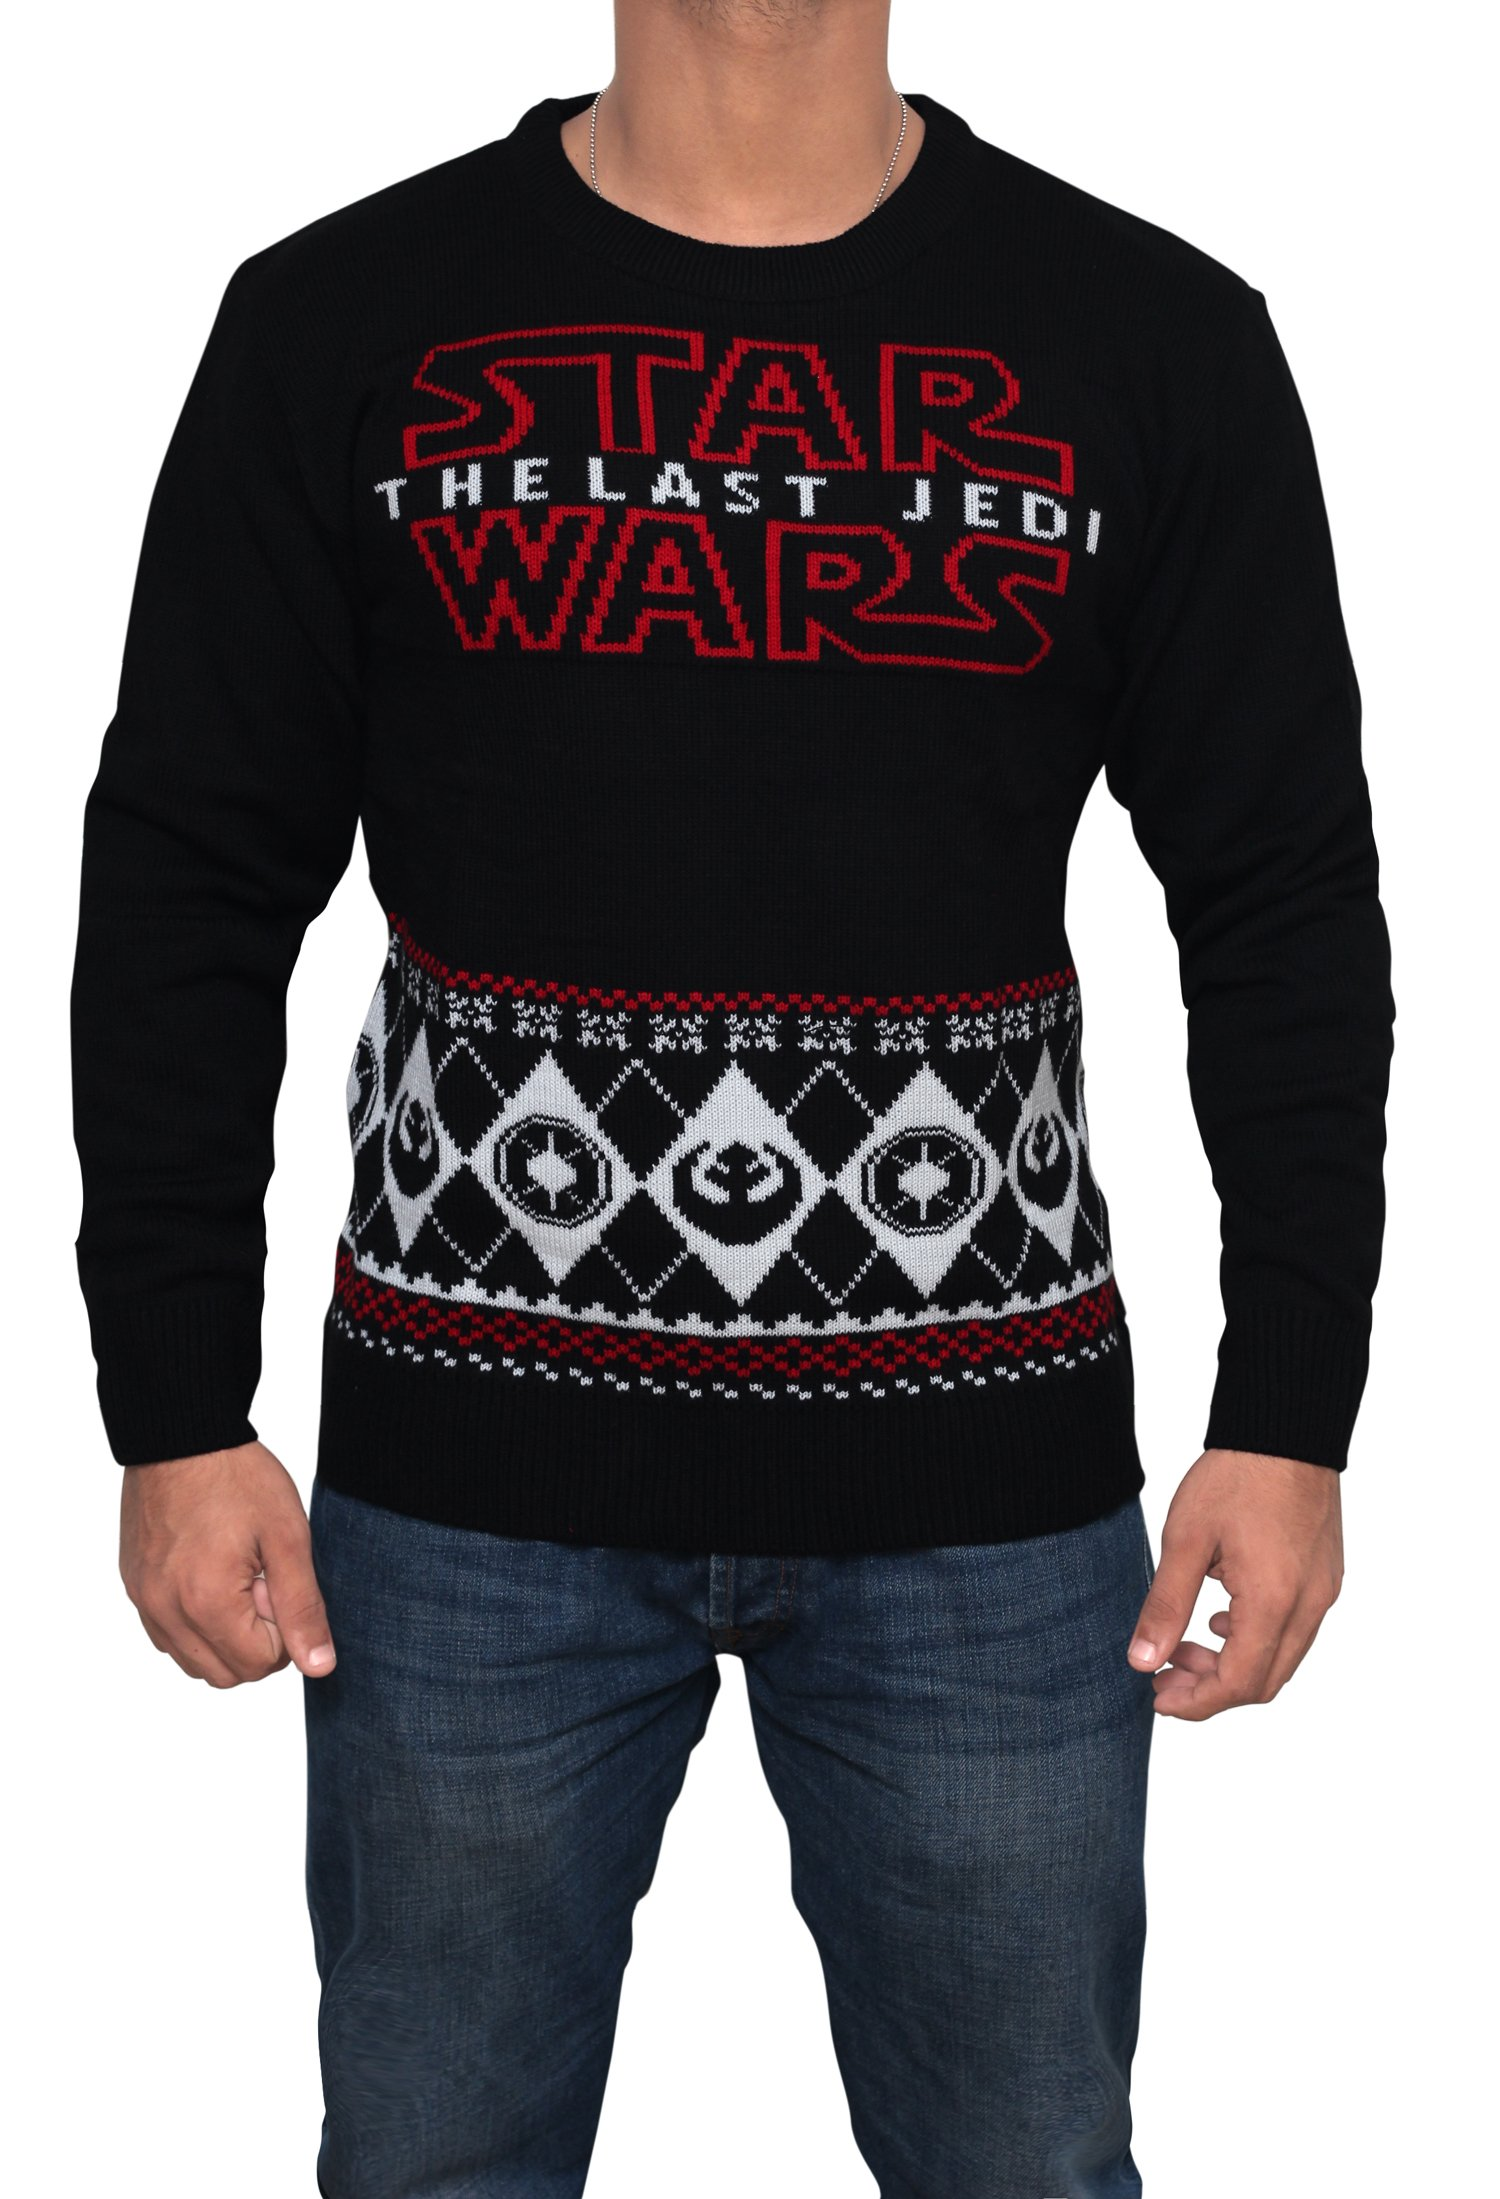 Star Wars Last Jedi Sweater - Star Wars Holiday Sweater by Miracle (Black, Large) by Miracle(Tm) (Image #3)